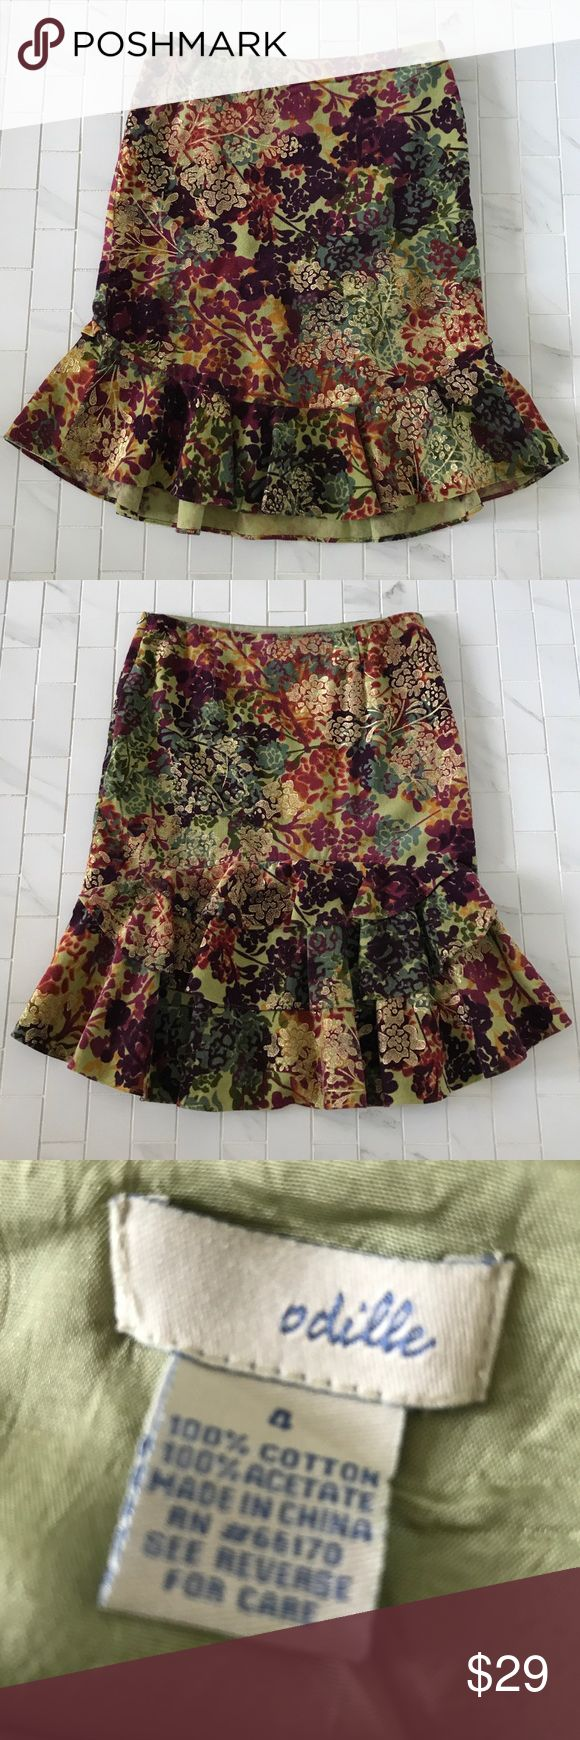 "Anthropologie multicolor floral skirt Eye catching pattern of warm fall colors 🍁in this pencil skirt with gold accents throughout. Peplum style hem. Two back darts. Fully lined. Approximate measurements flat: 15""waist, 22""waist to hem. The tiered ruffles along the back are unexpected.Side zipper with hook and eye closure. Cotton /acetate blend. Hand wash. Wear this skirt with a variety of colors you already have in your closet! Slip on some ankle boots or tall boots and this is a fun autumn…"